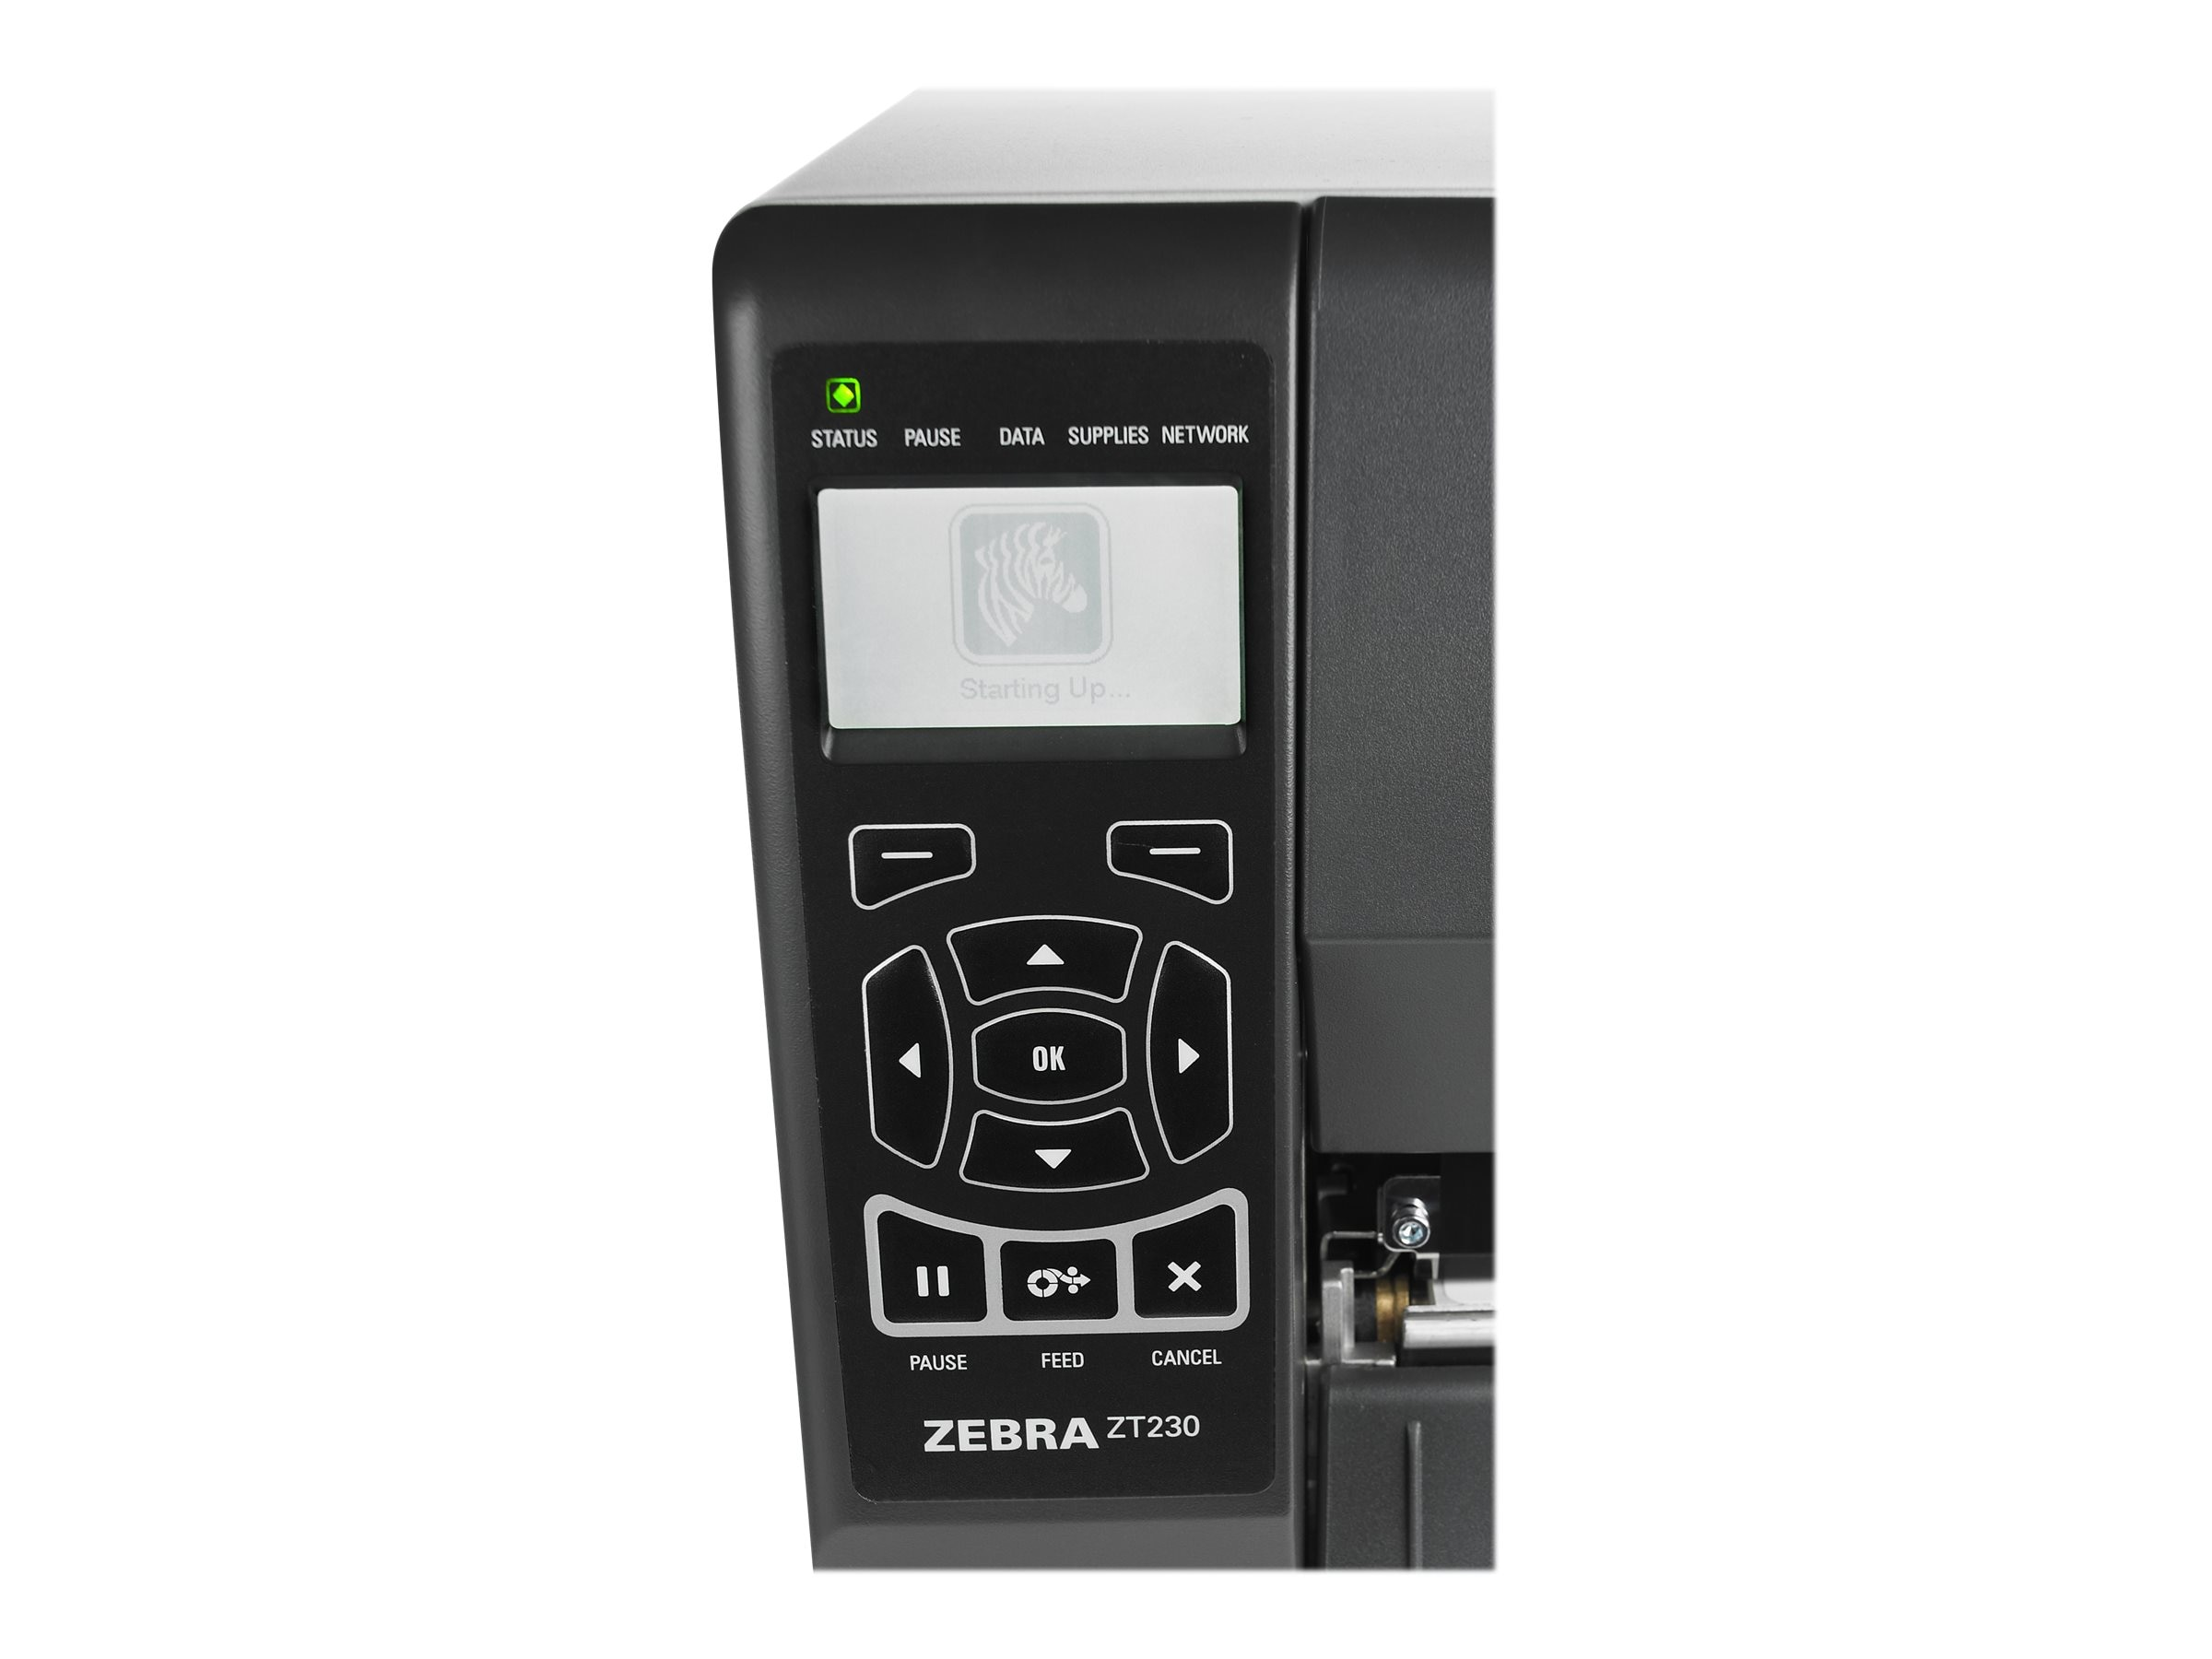 Zebra ZT230 TT 203dpi Serial USB Parallel Printer w  US Power Cord Plug, ZT23042-T01100FZ